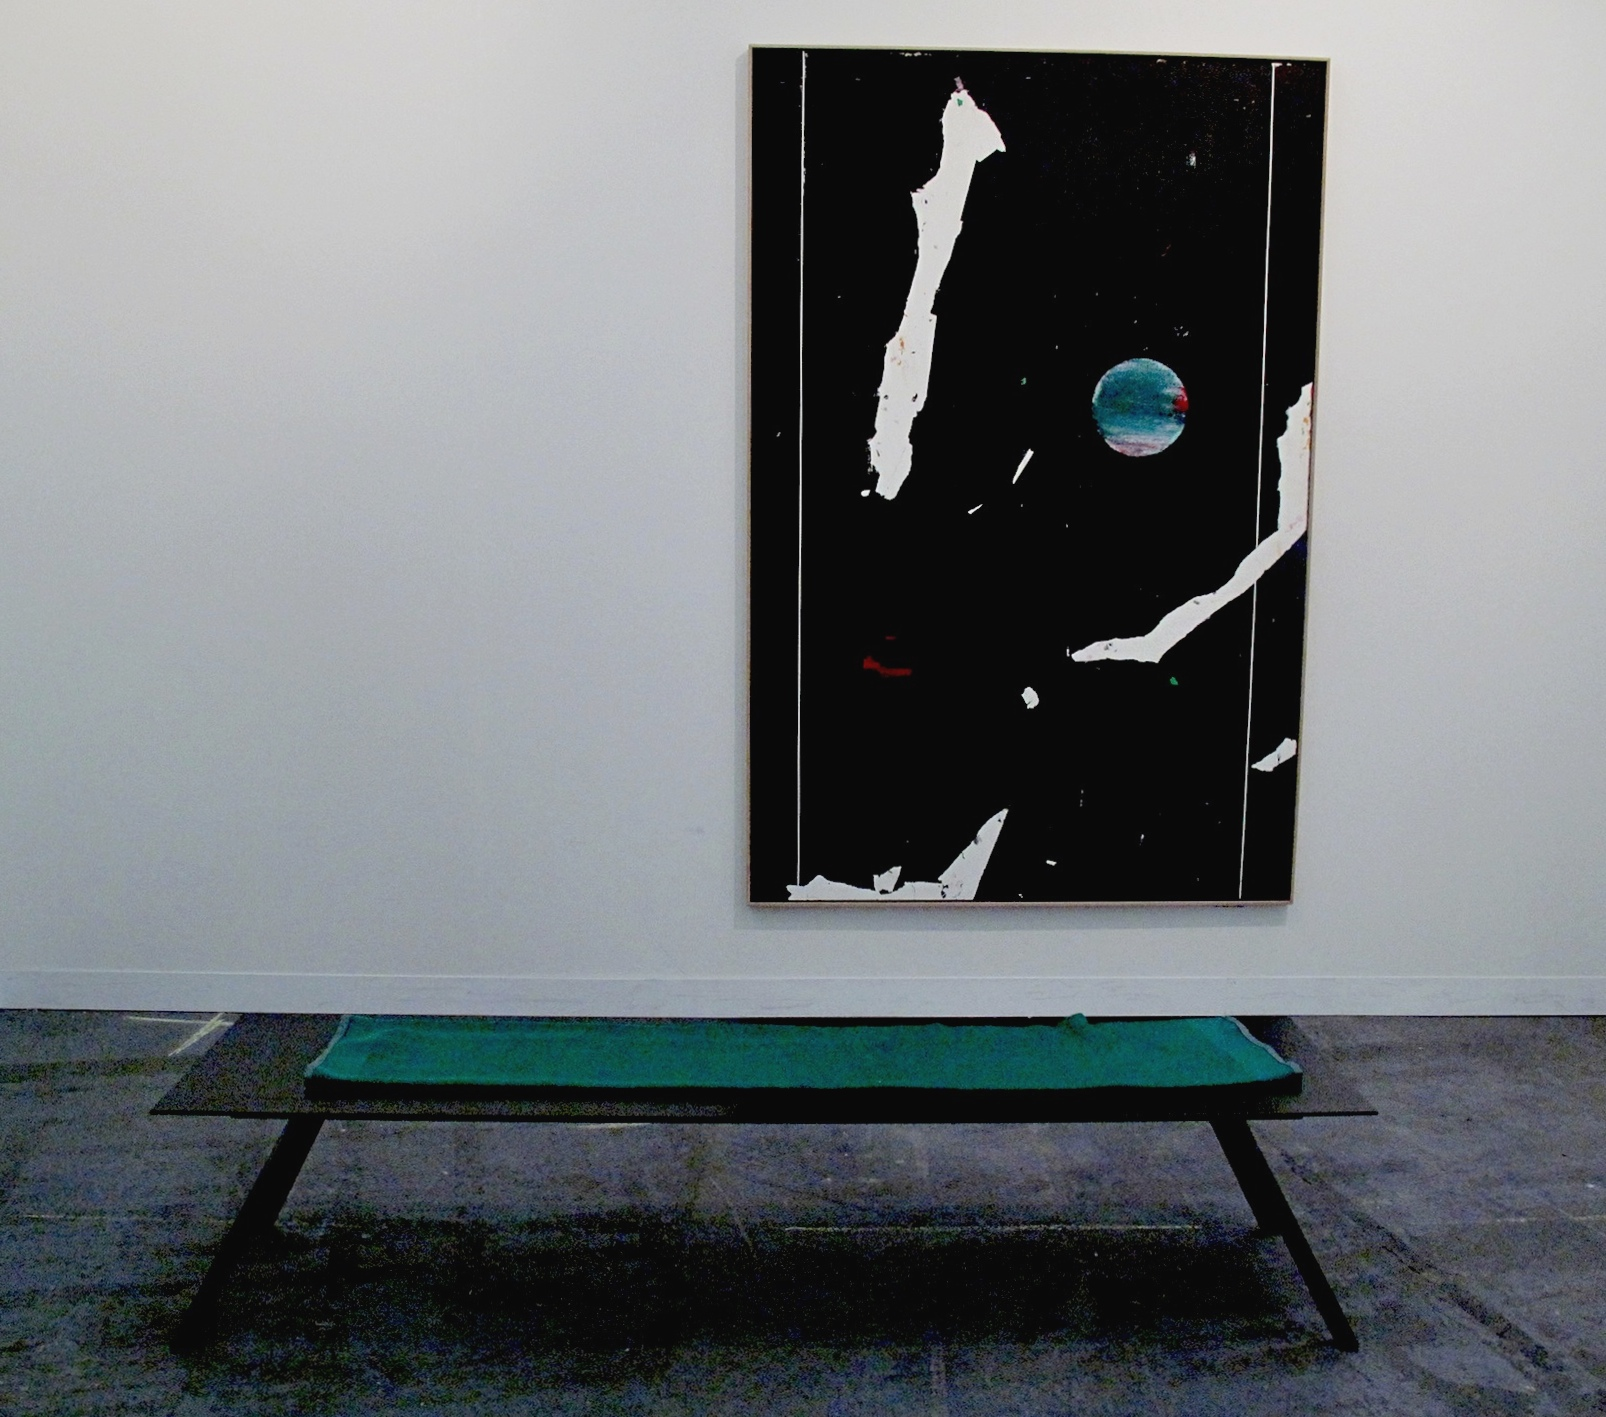 C L E A R I N G, Brooklyn/Brussels, Armory Presents Harold Ancart, Installation view (bench with fabric and painting), The Armory Show, New York, 2014, Pier 94